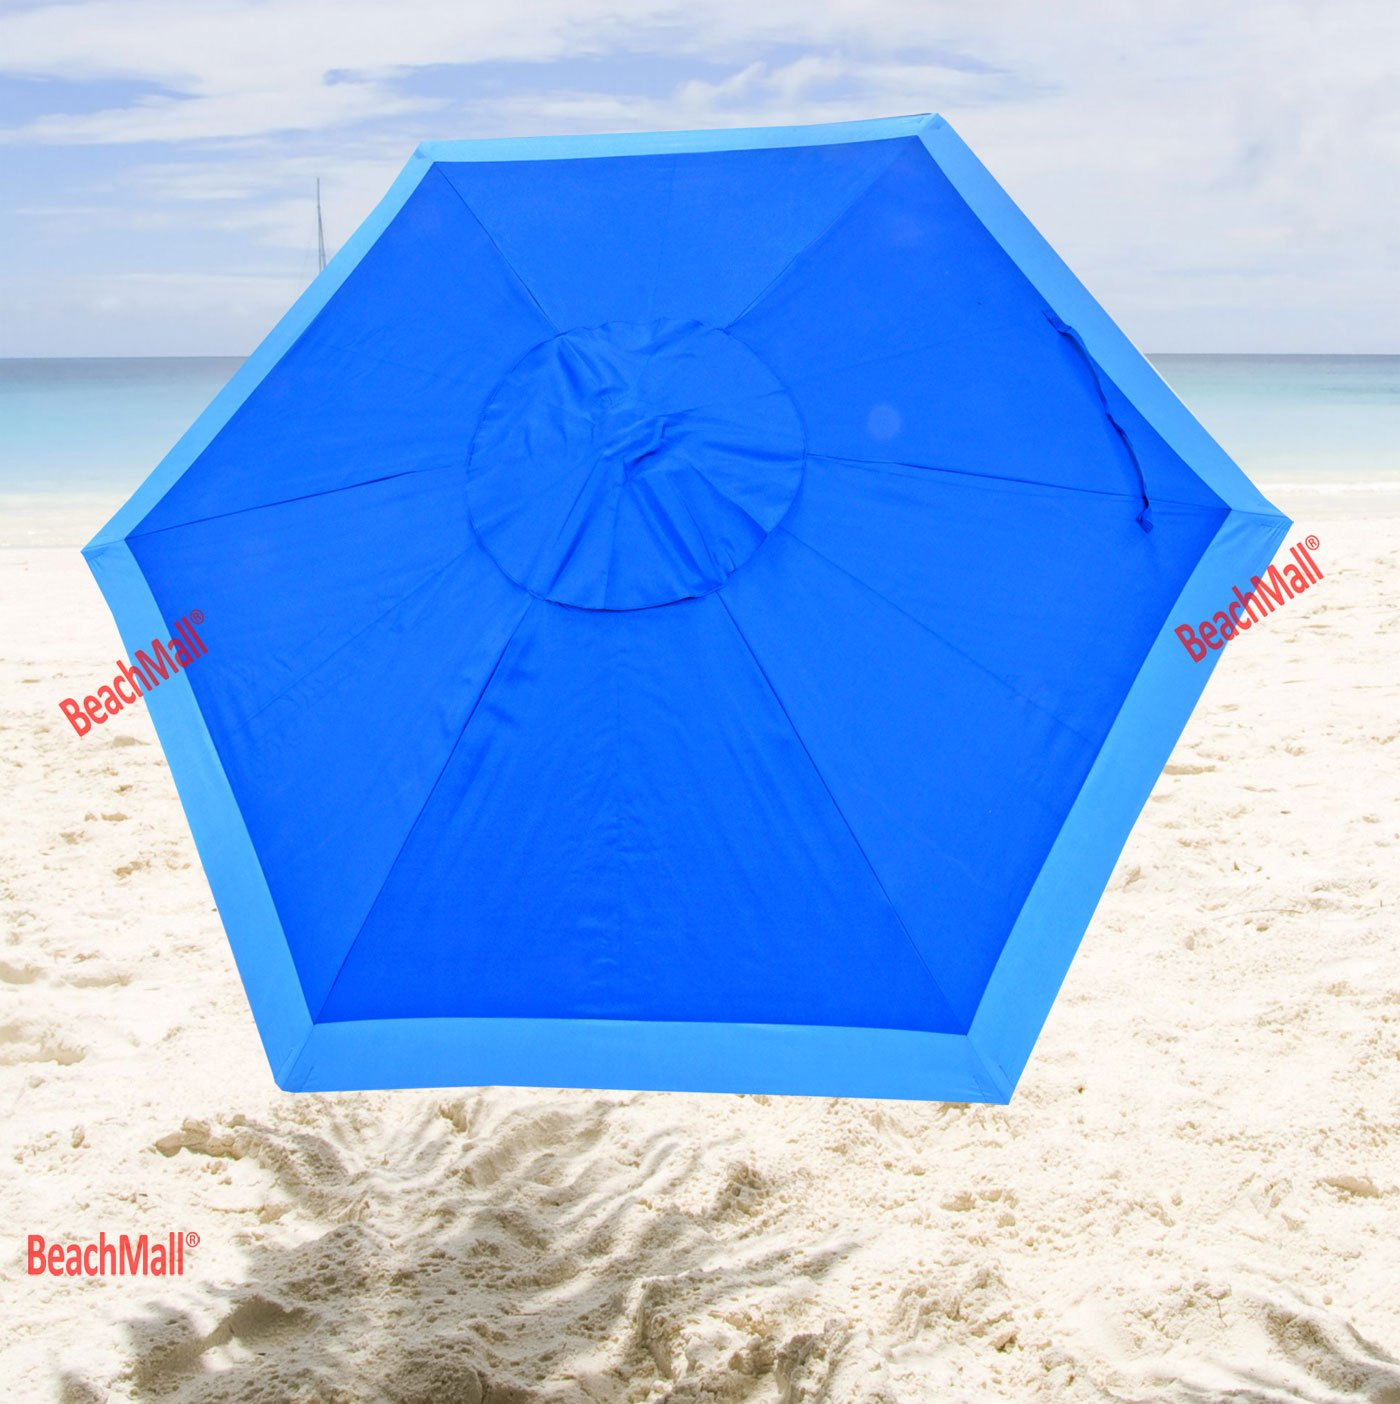 7 foot Deluxe Beach Umbrella